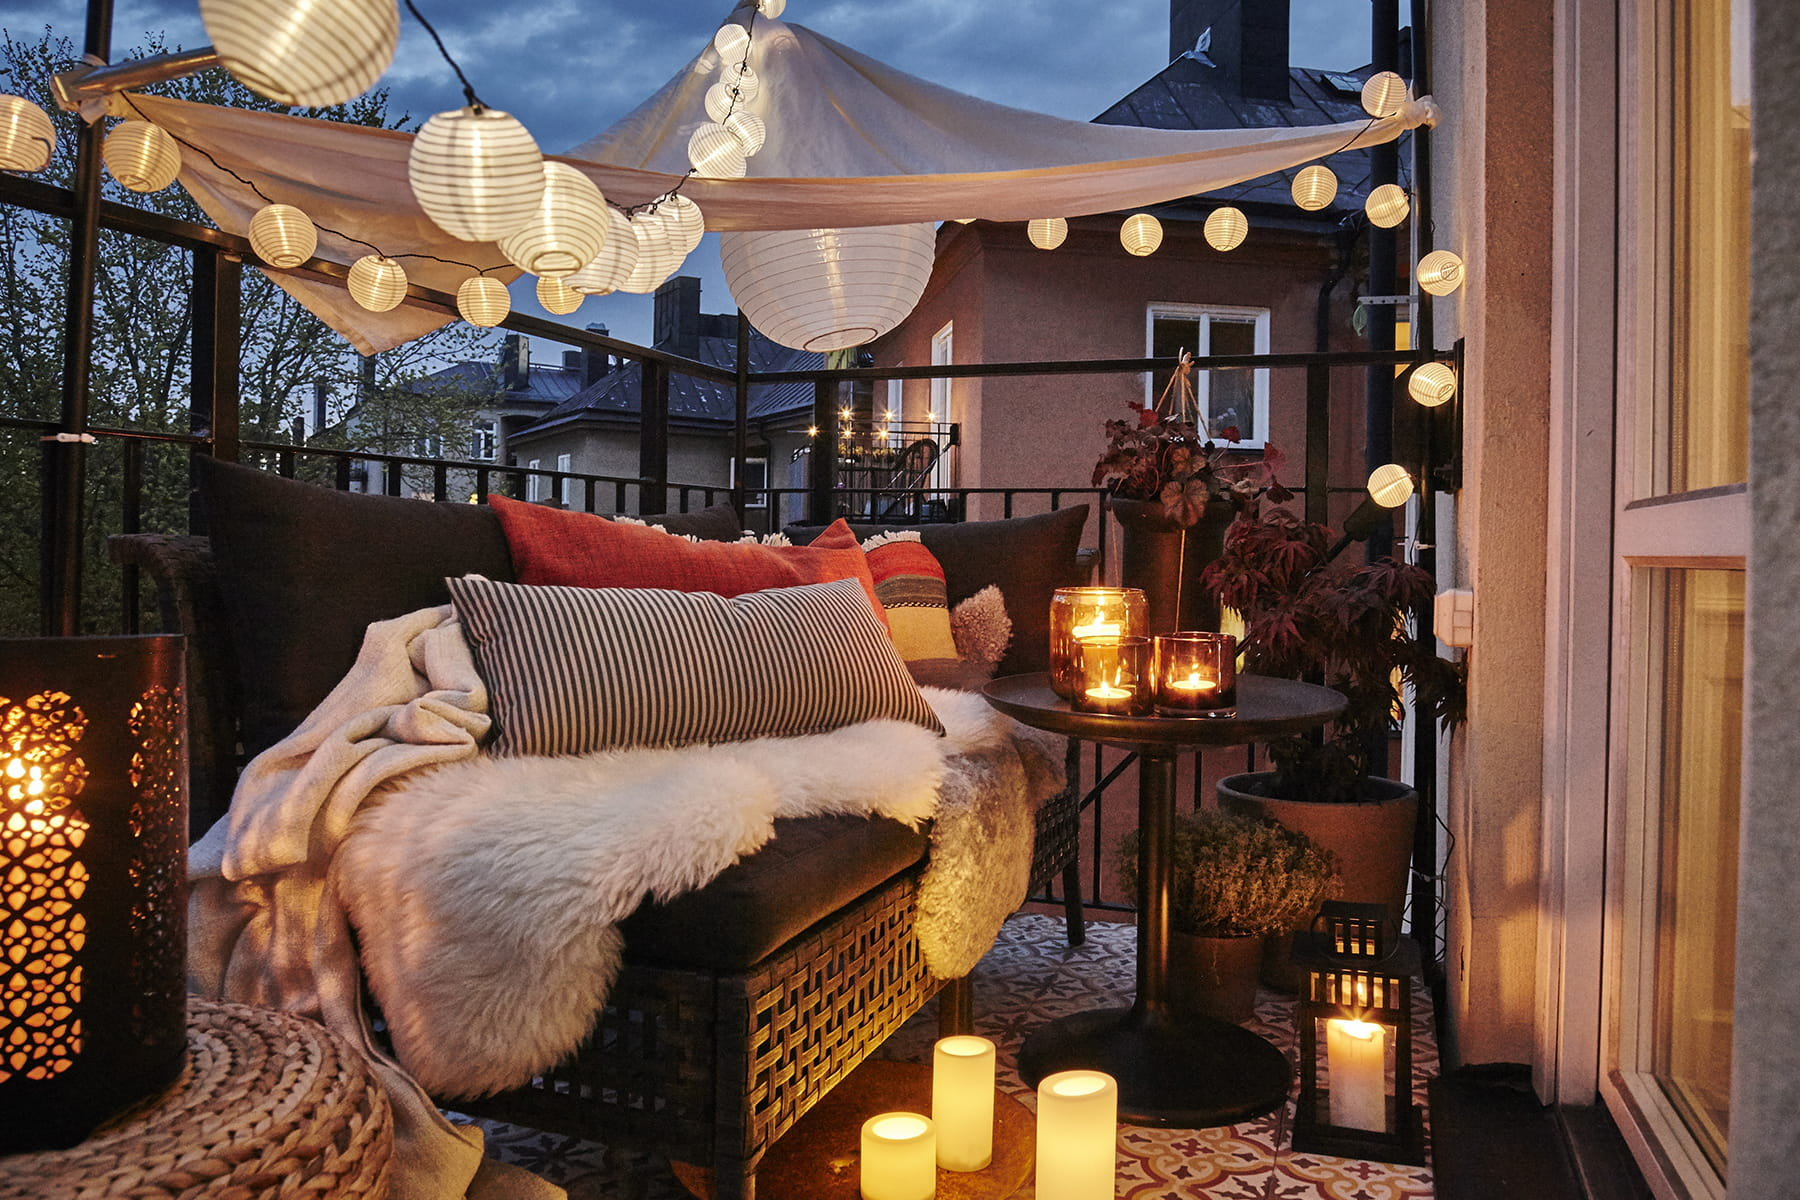 des guirlandes pour une terrasse lumineuse clairage de jardin 20 inspirations linternaute. Black Bedroom Furniture Sets. Home Design Ideas